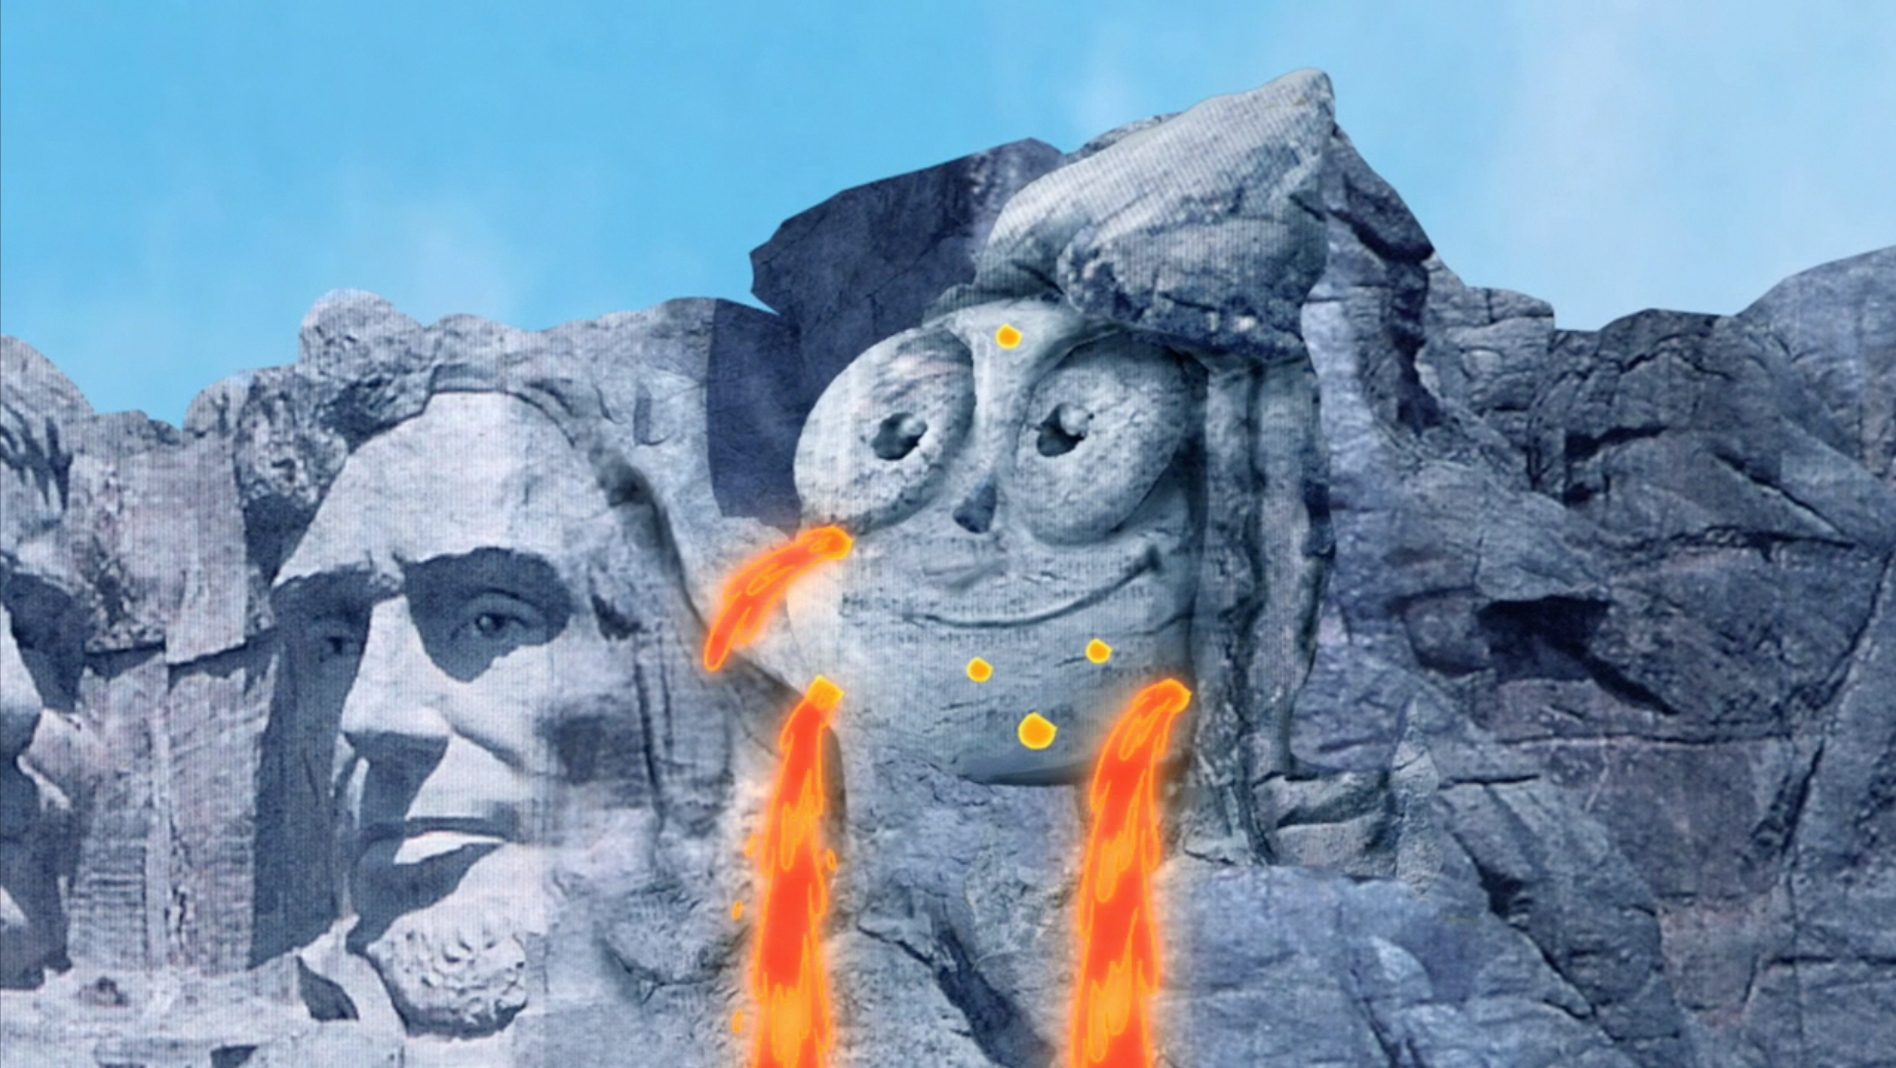 Remodelling Mount Rushmore Phineas And Ferb Wiki Your